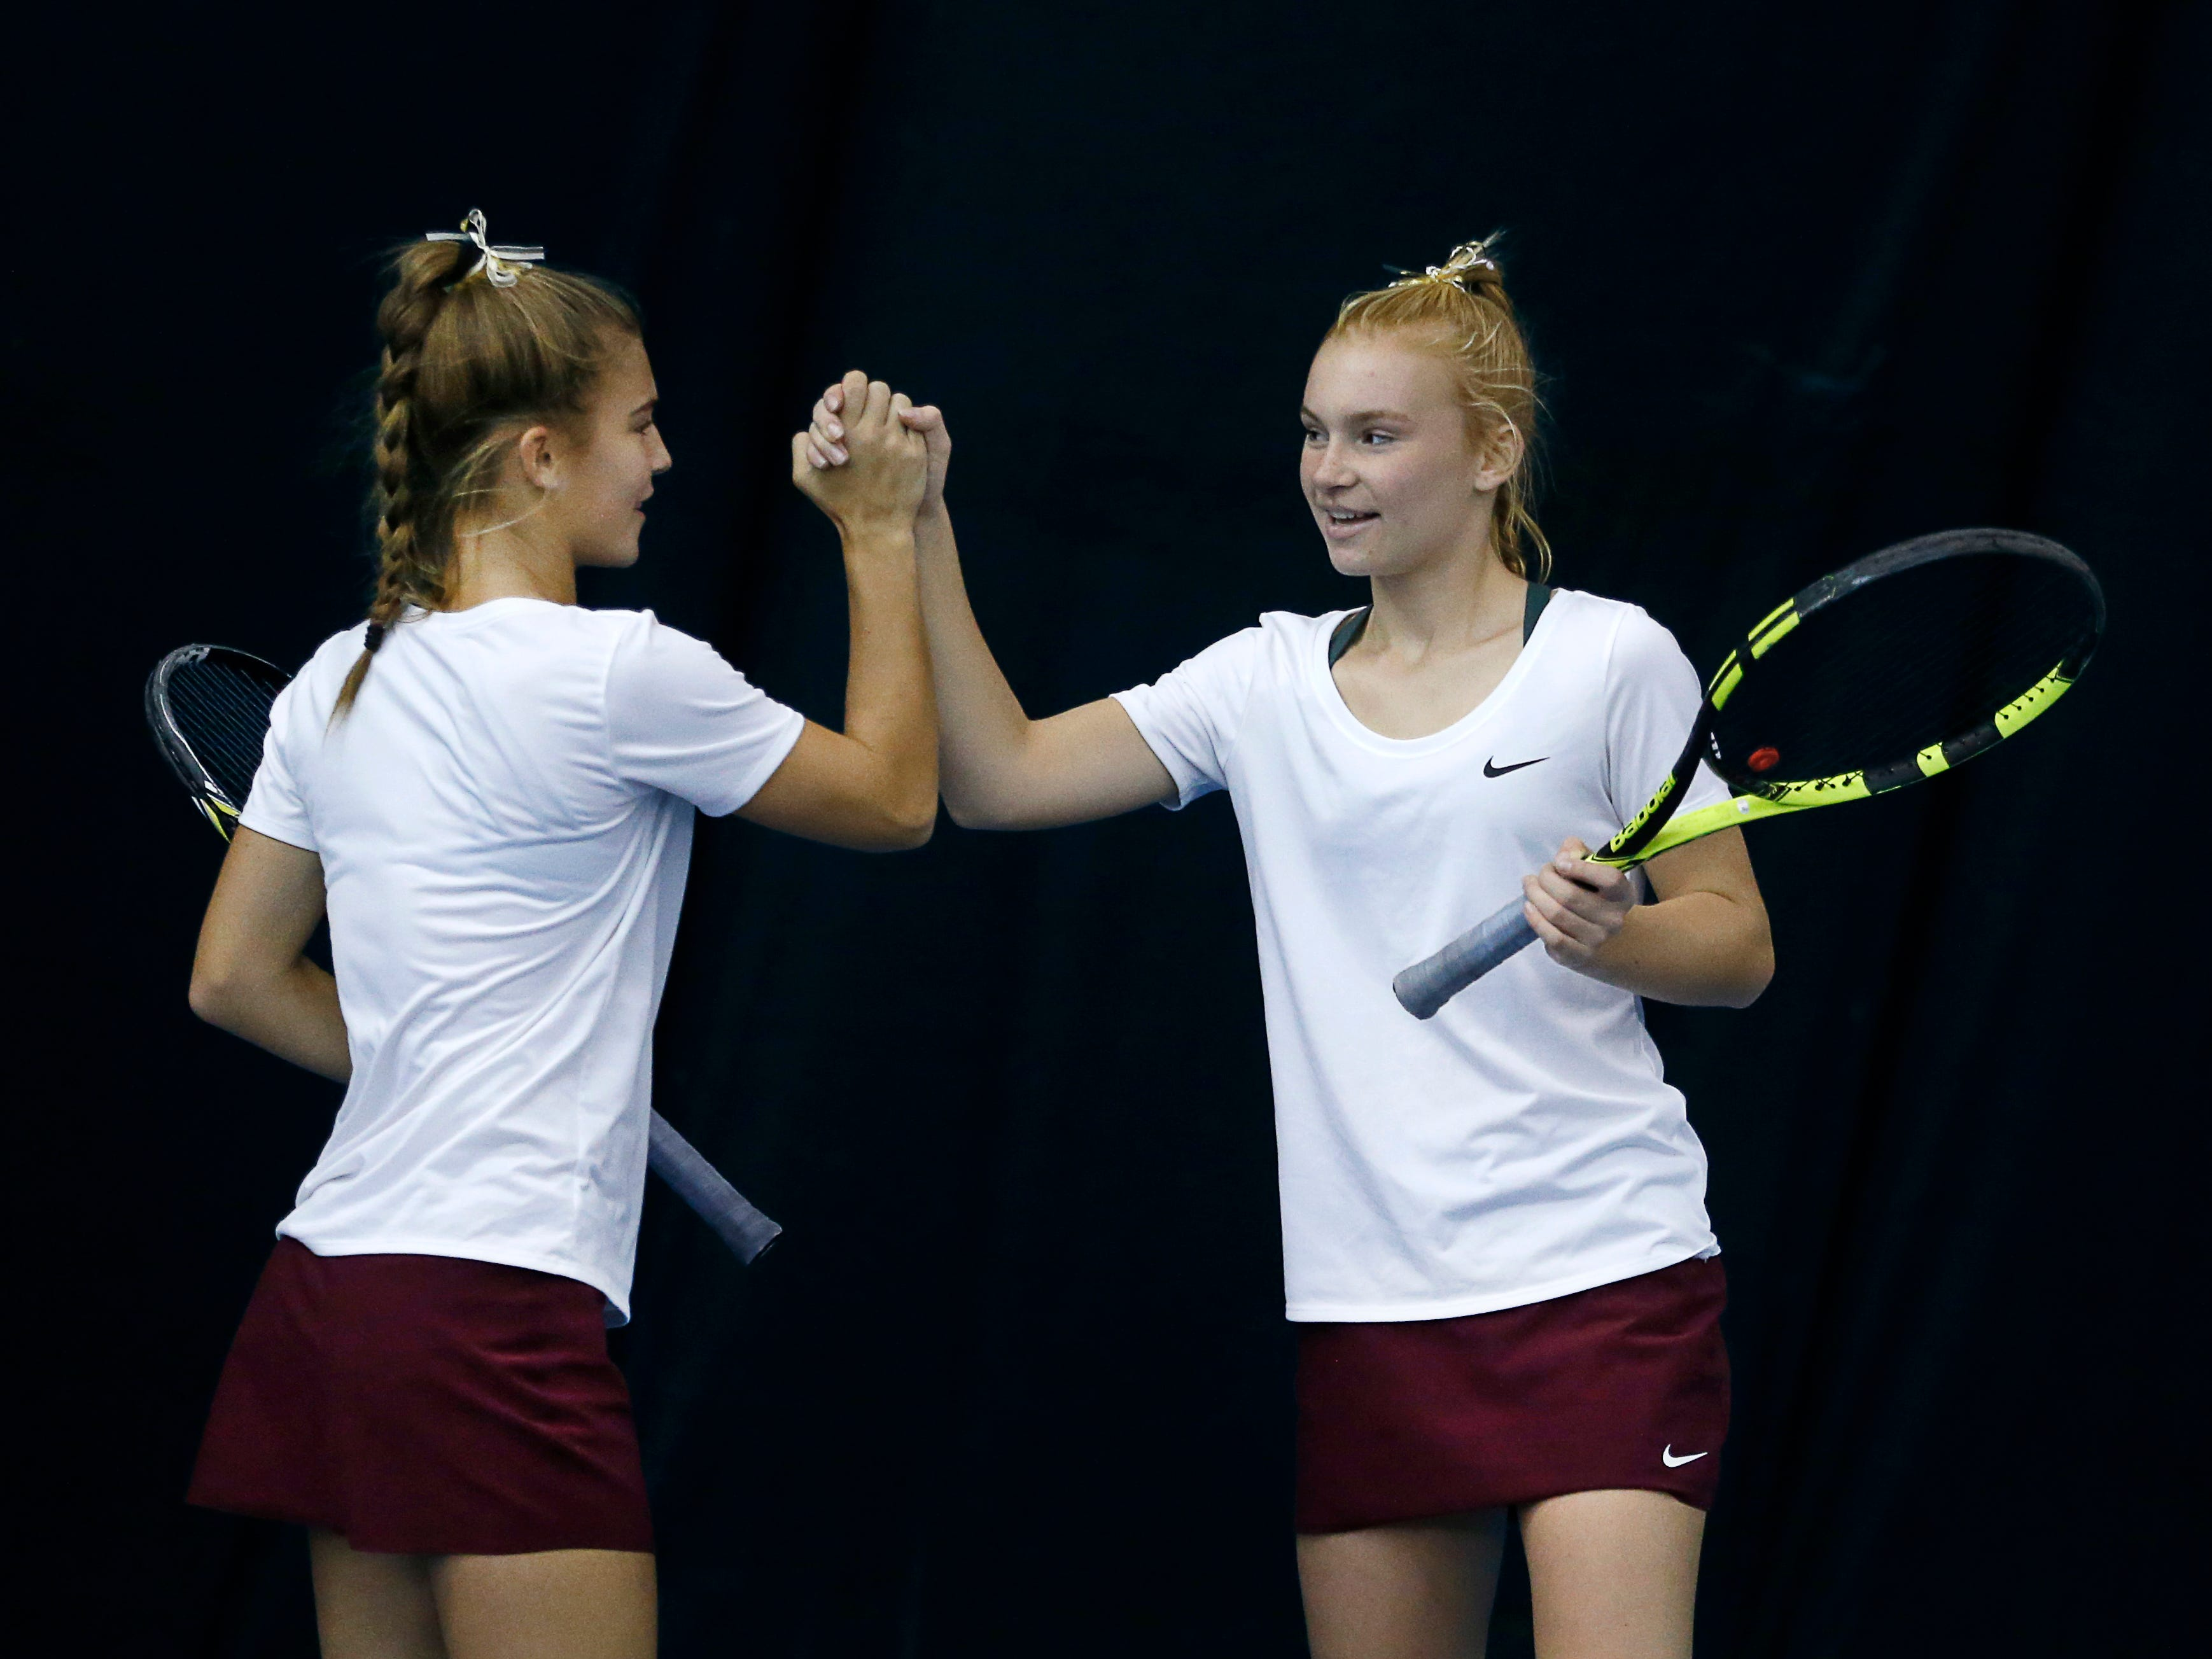 Pittsford Mendon's Sarah Bodewes high fives her sister Jess during the doubles final of the Section V Tennis State Qualifiers at Mendon Racquet & Pool Club. Sarah and Jess won 6-1, 6-1.